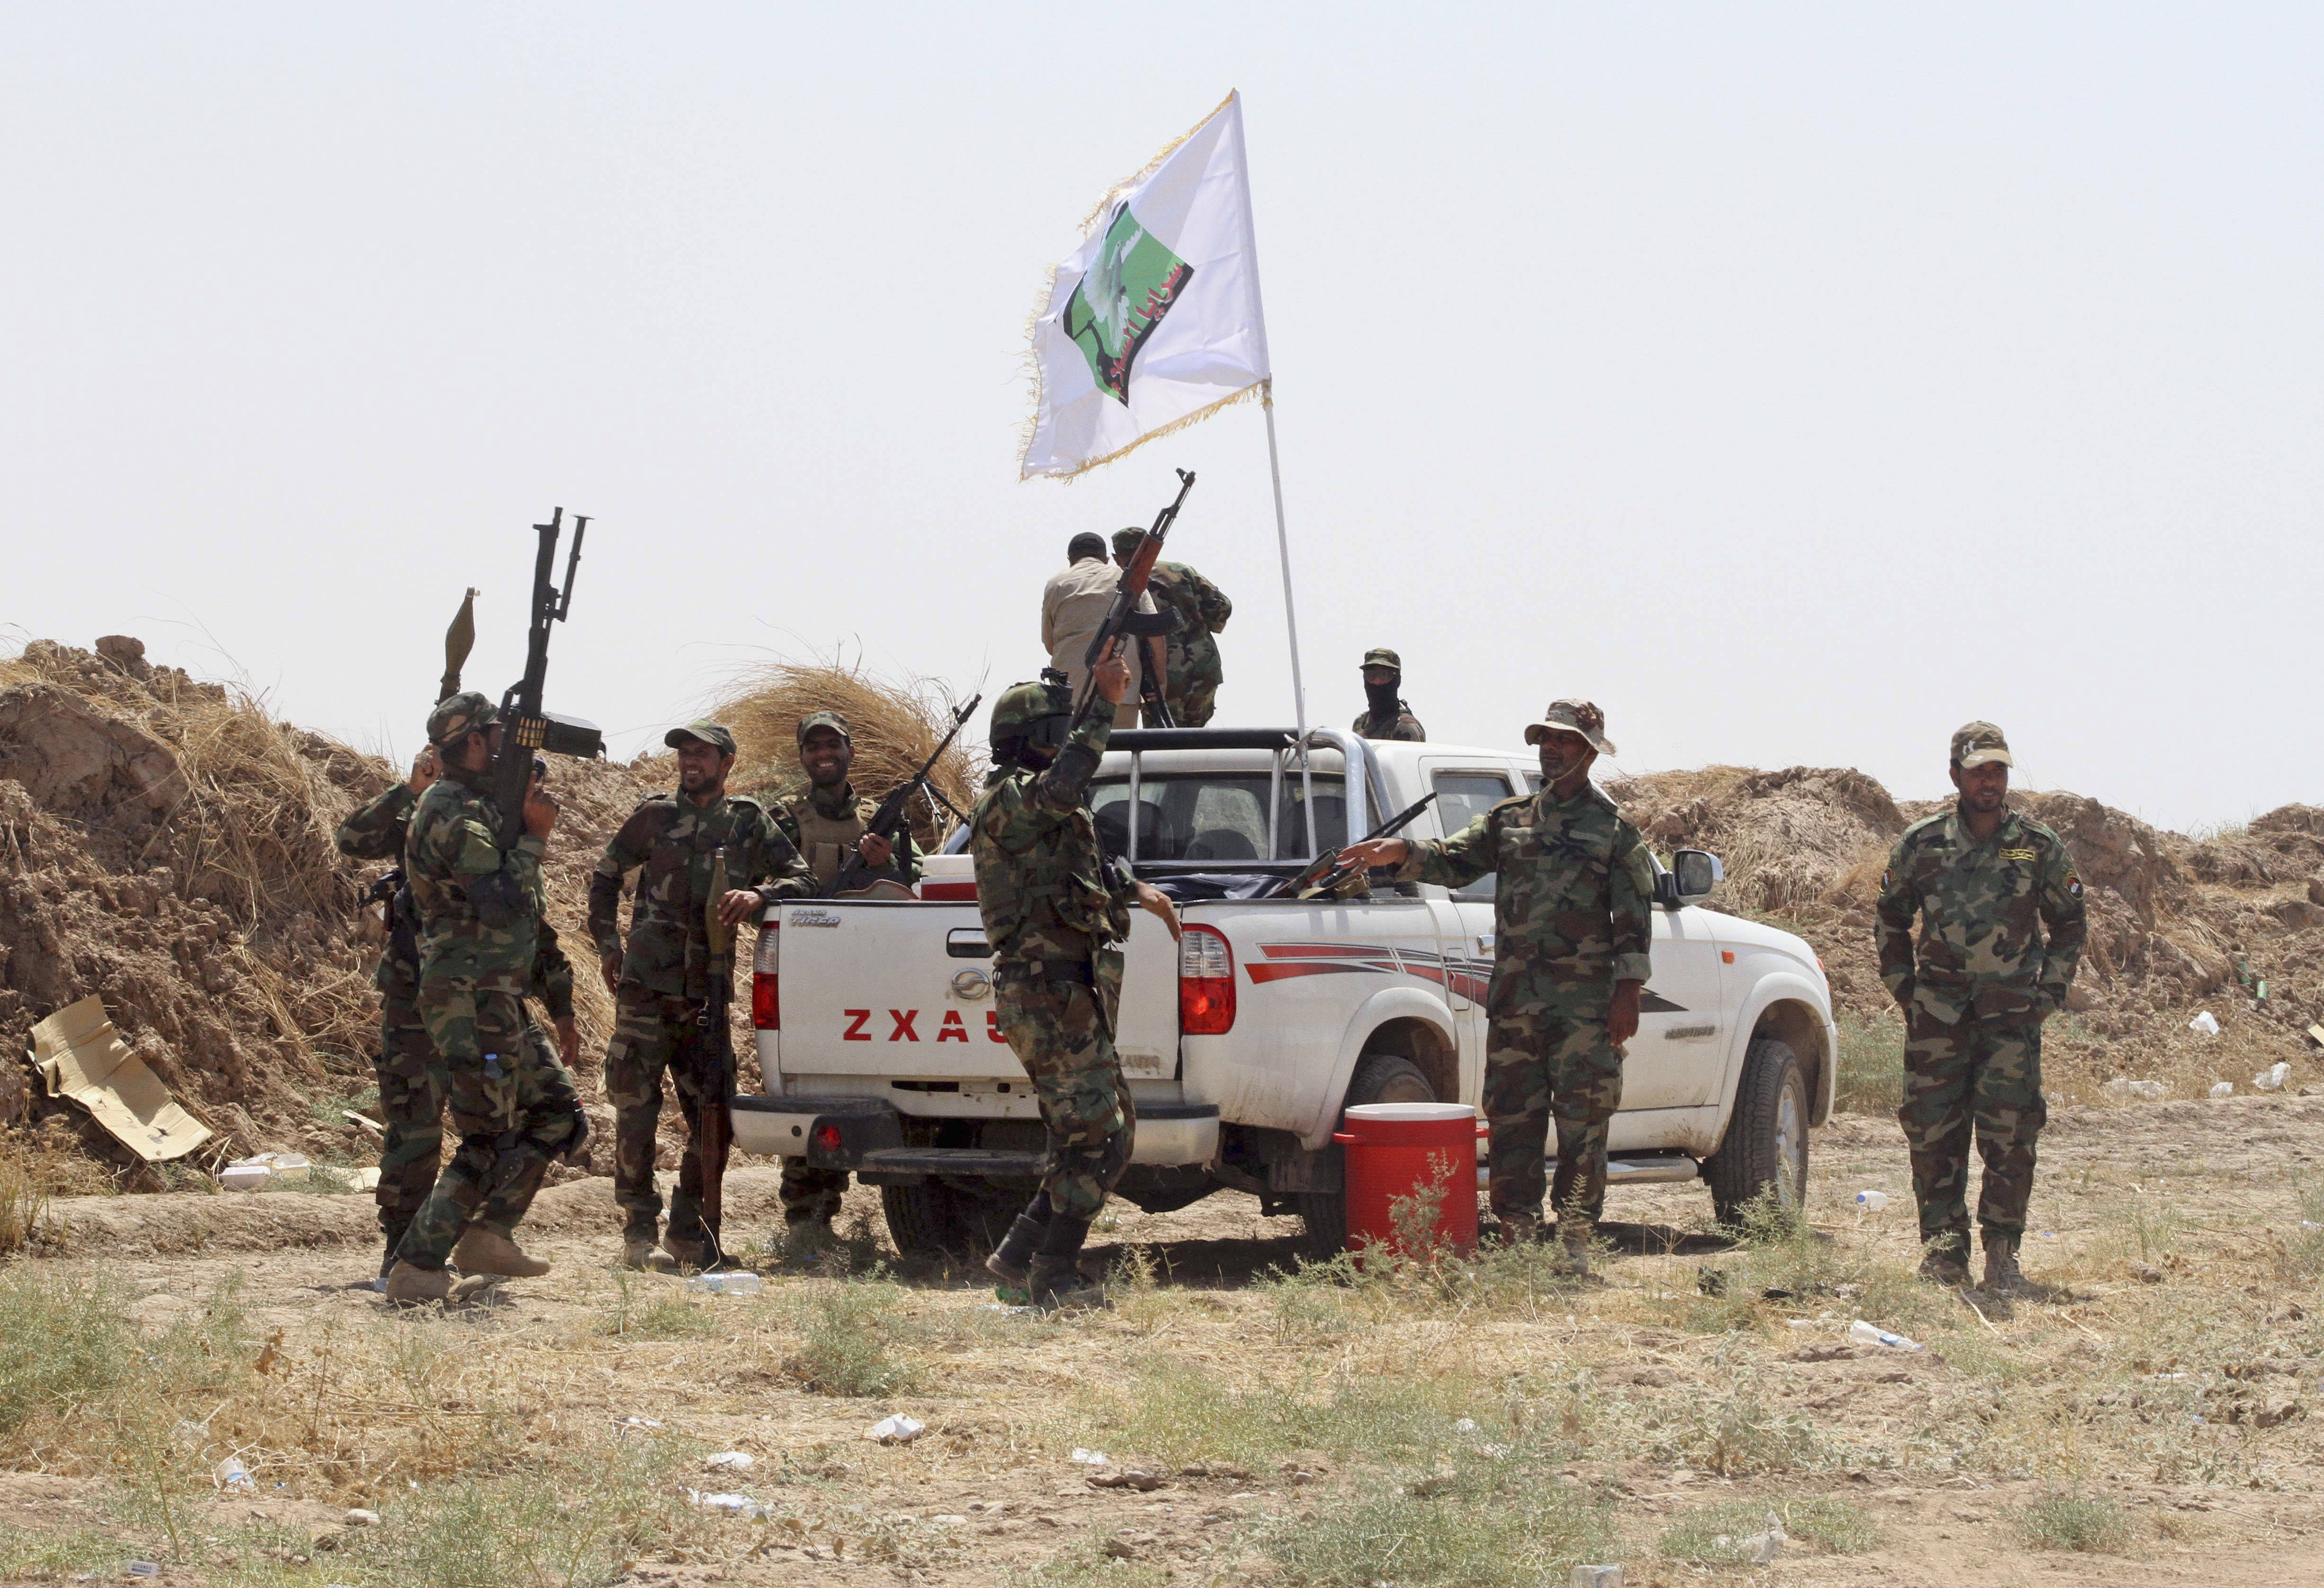 Iraqi security forces and Shiite militiamen celebrate after breaking the siege on 15,000 Shiite Turkmens stranded in the farming community town of Amirli, north of Baghdad, Sunday. The Islamic State extremist group has seized cities, towns and vast tracts of land in northeastern Syria and northern and western Iraq. It views Shiites as apostates and has carried out a number of massacres and beheadings -- often posting grisly videos and photos of the atrocities online.